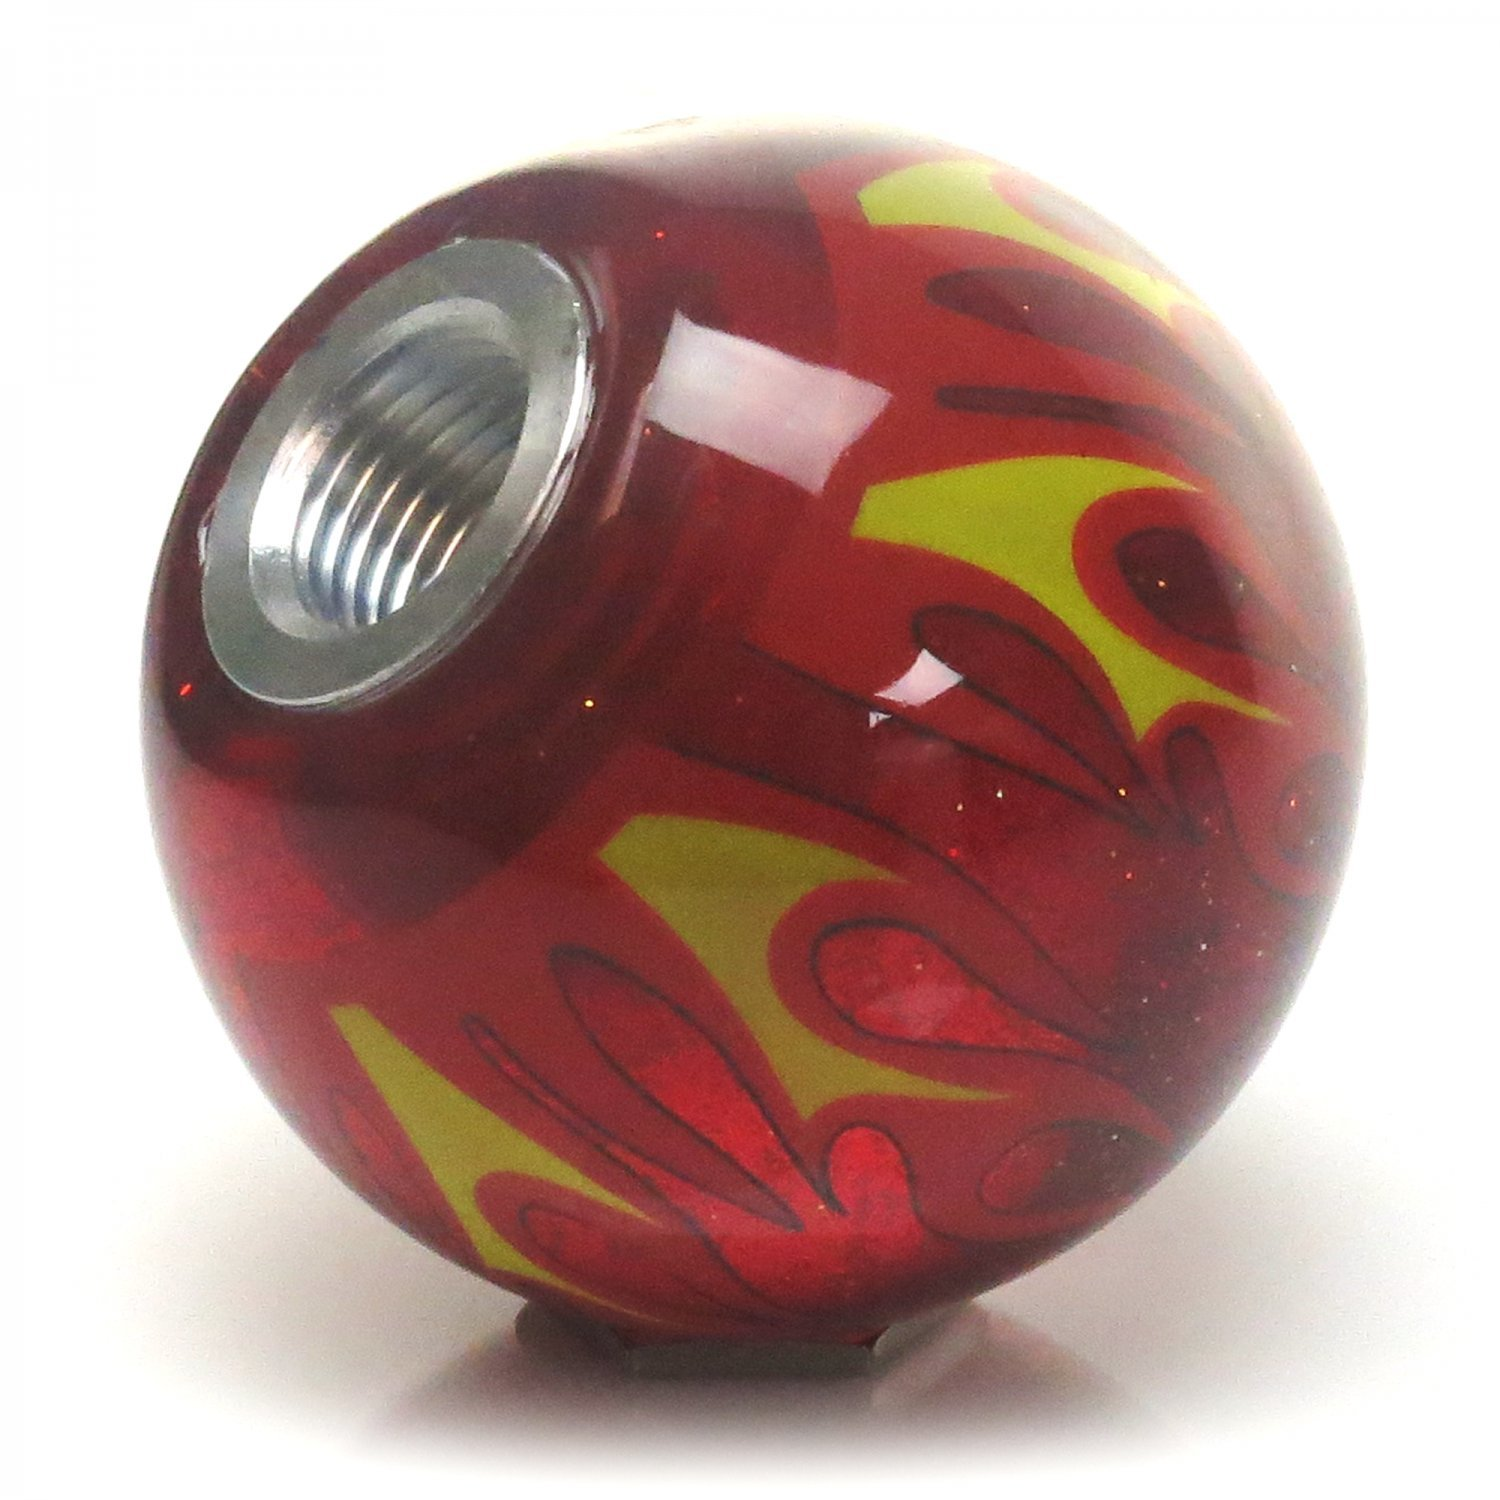 Orange 6 Speed Shift Pattern - Dots 26 Red Flame Metal Flake with M16 x 1.5 Insert American Shifter 297168 Shift Knob